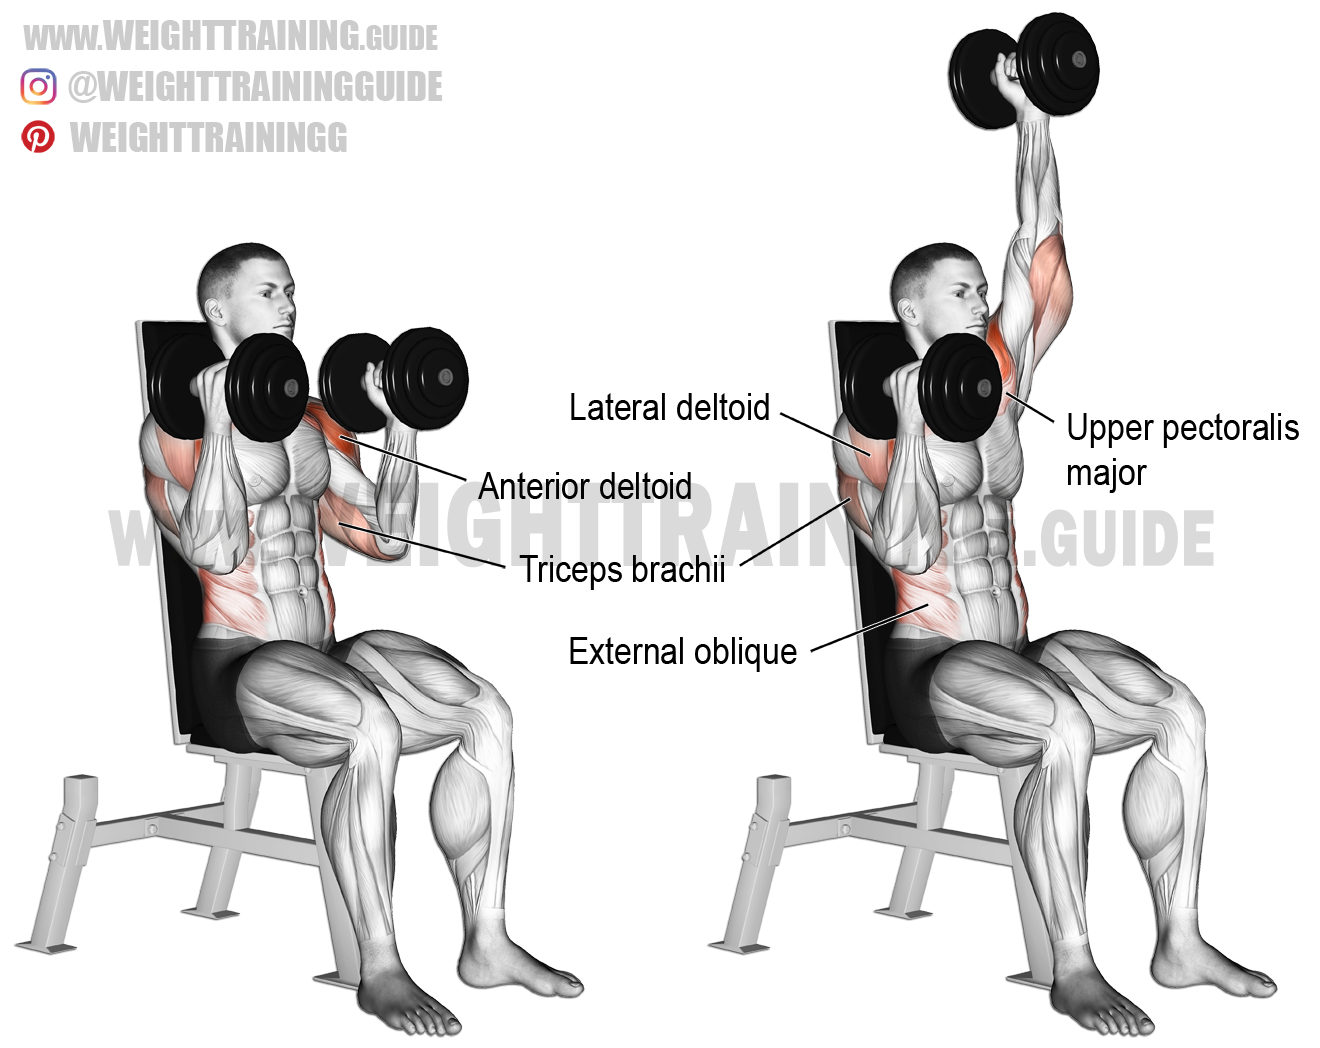 Seated elbows-in alternating dumbbell overhead press